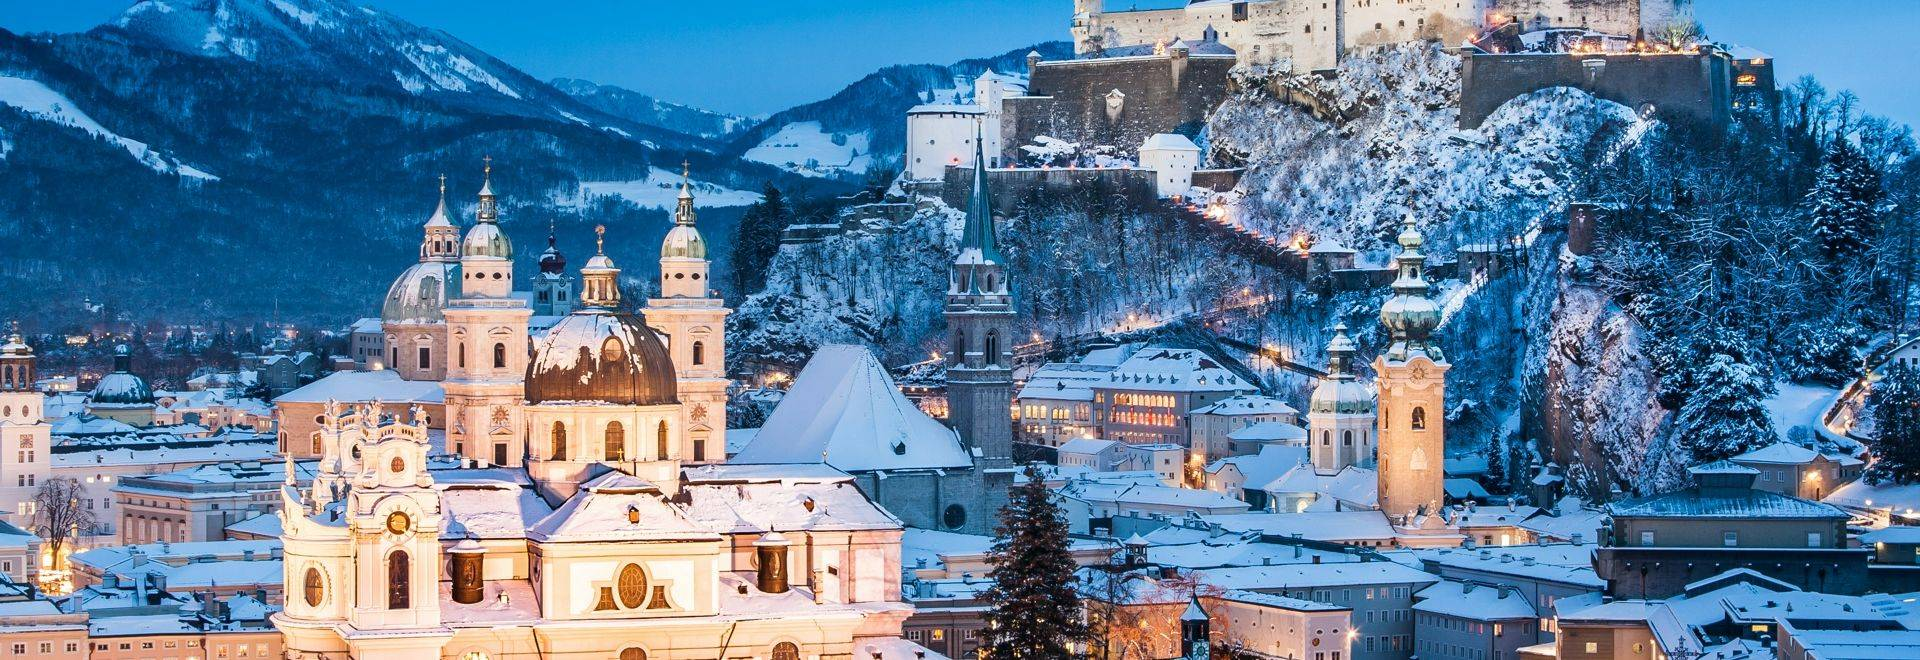 Beautiful view of the historic city of Salzburg with Festung Hohensalzburg in winter, Salzburger Land, Austria.